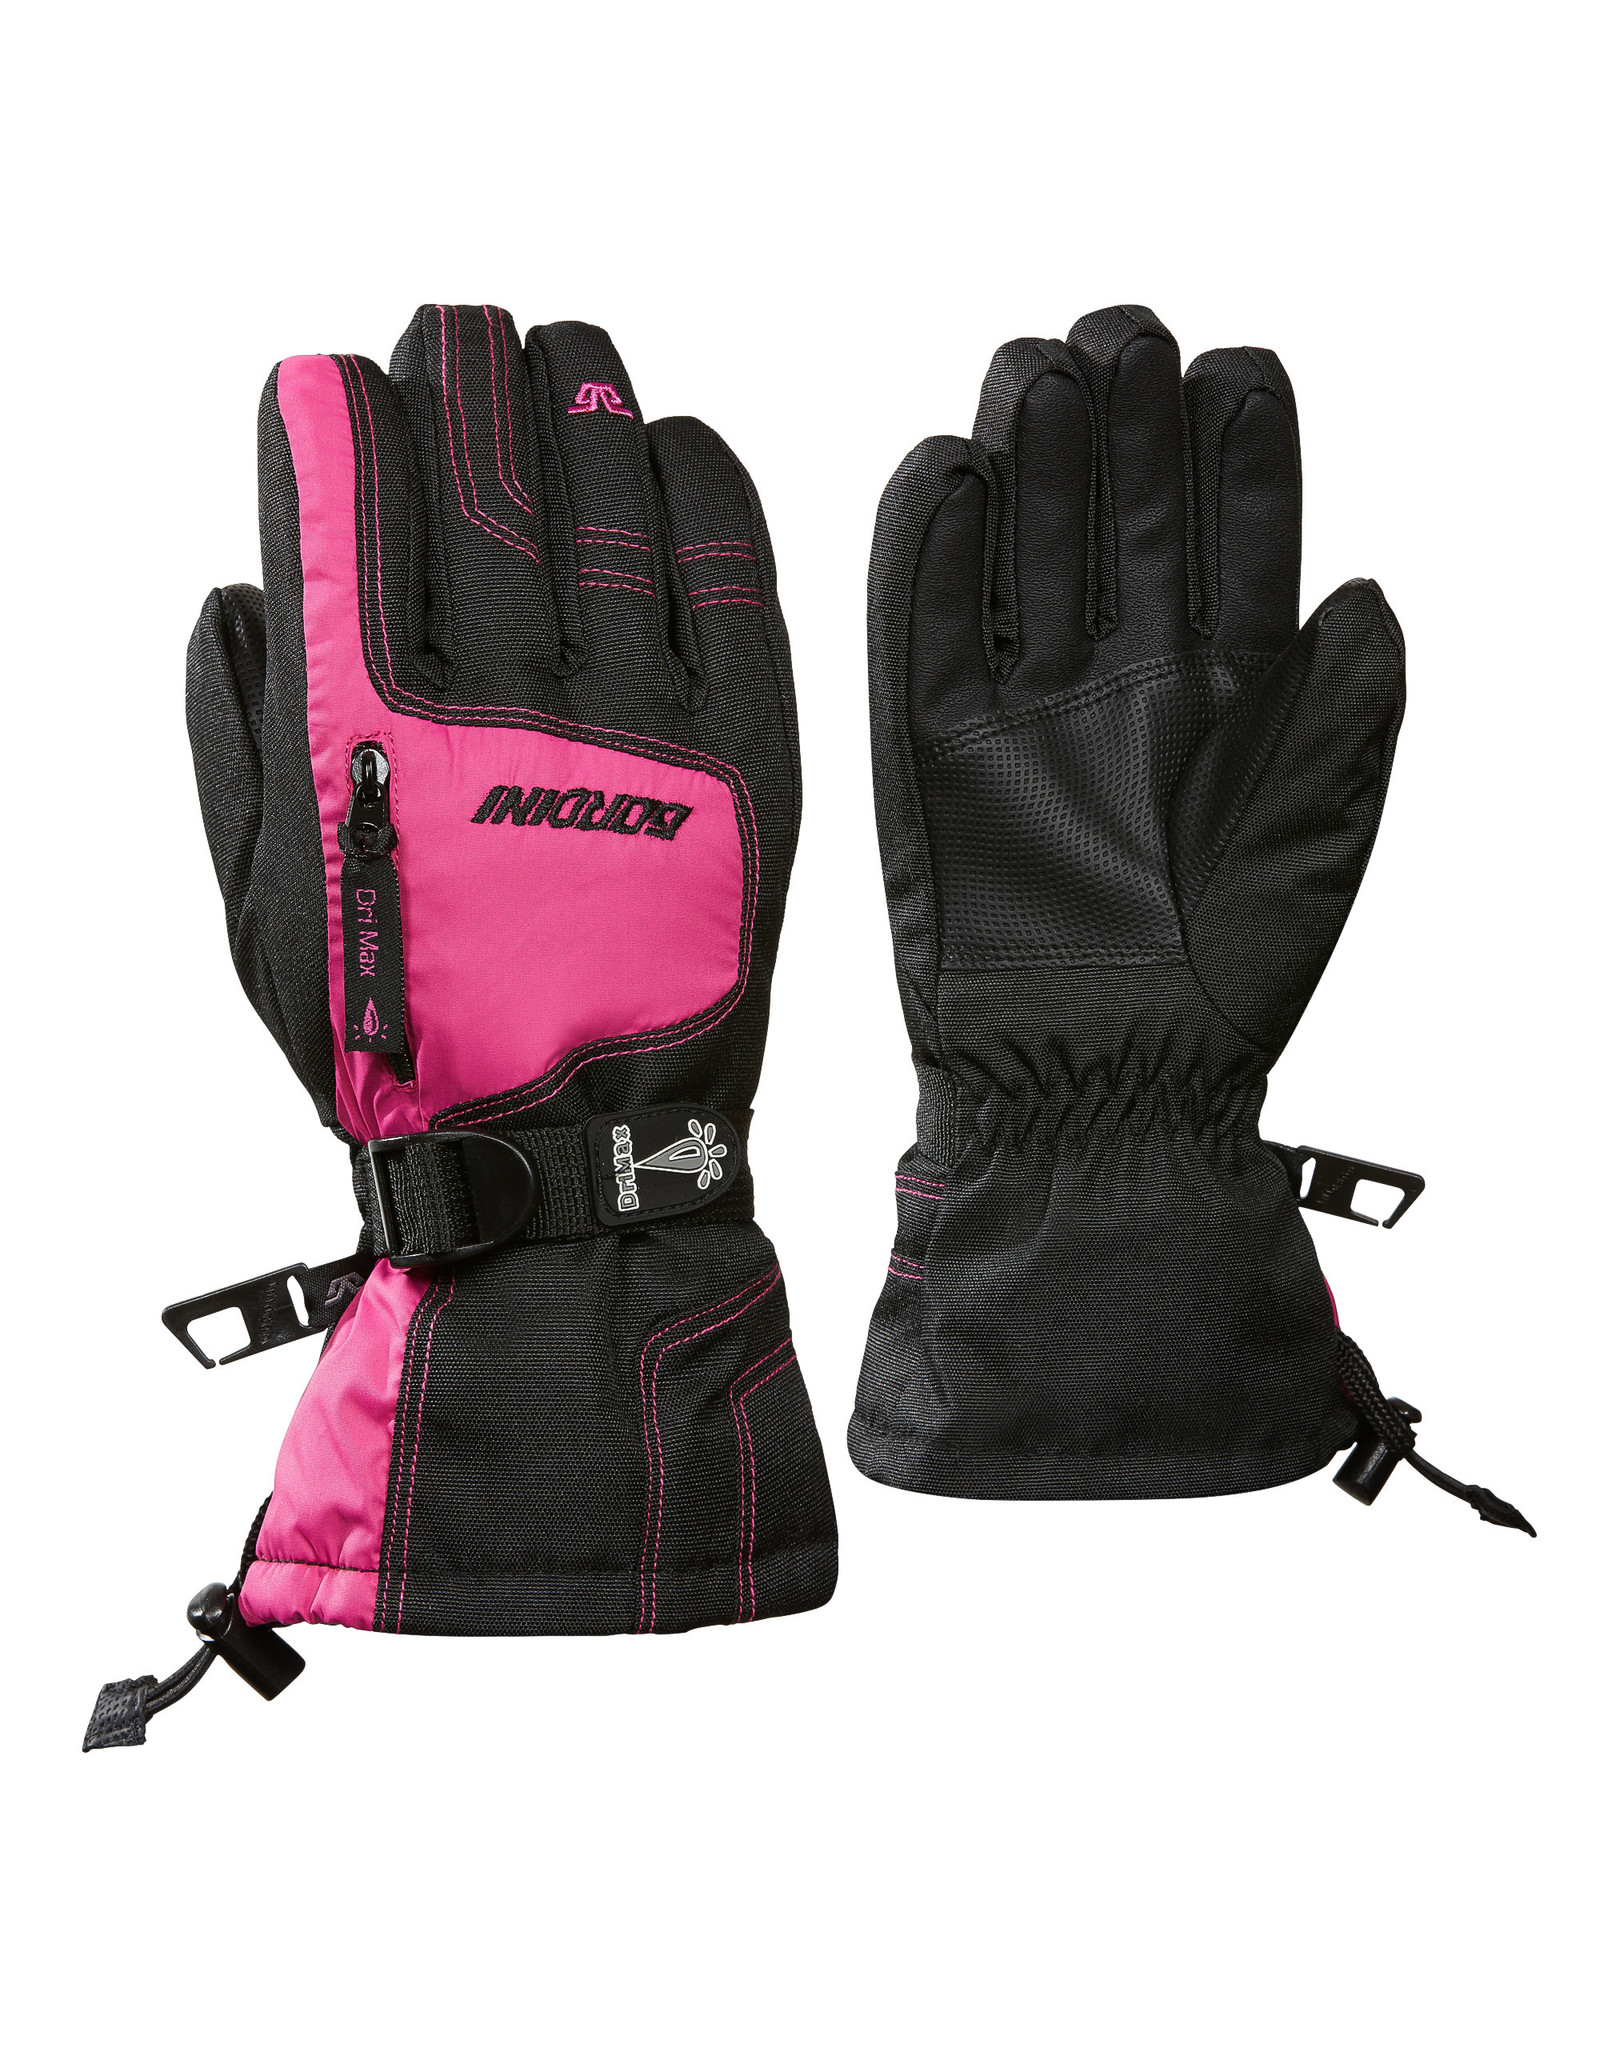 GORDINI GORDINI ULTRA DRI-MAX GAUNTLET IV JUNIOR GLOVE BLACK-DEEP PINK 20